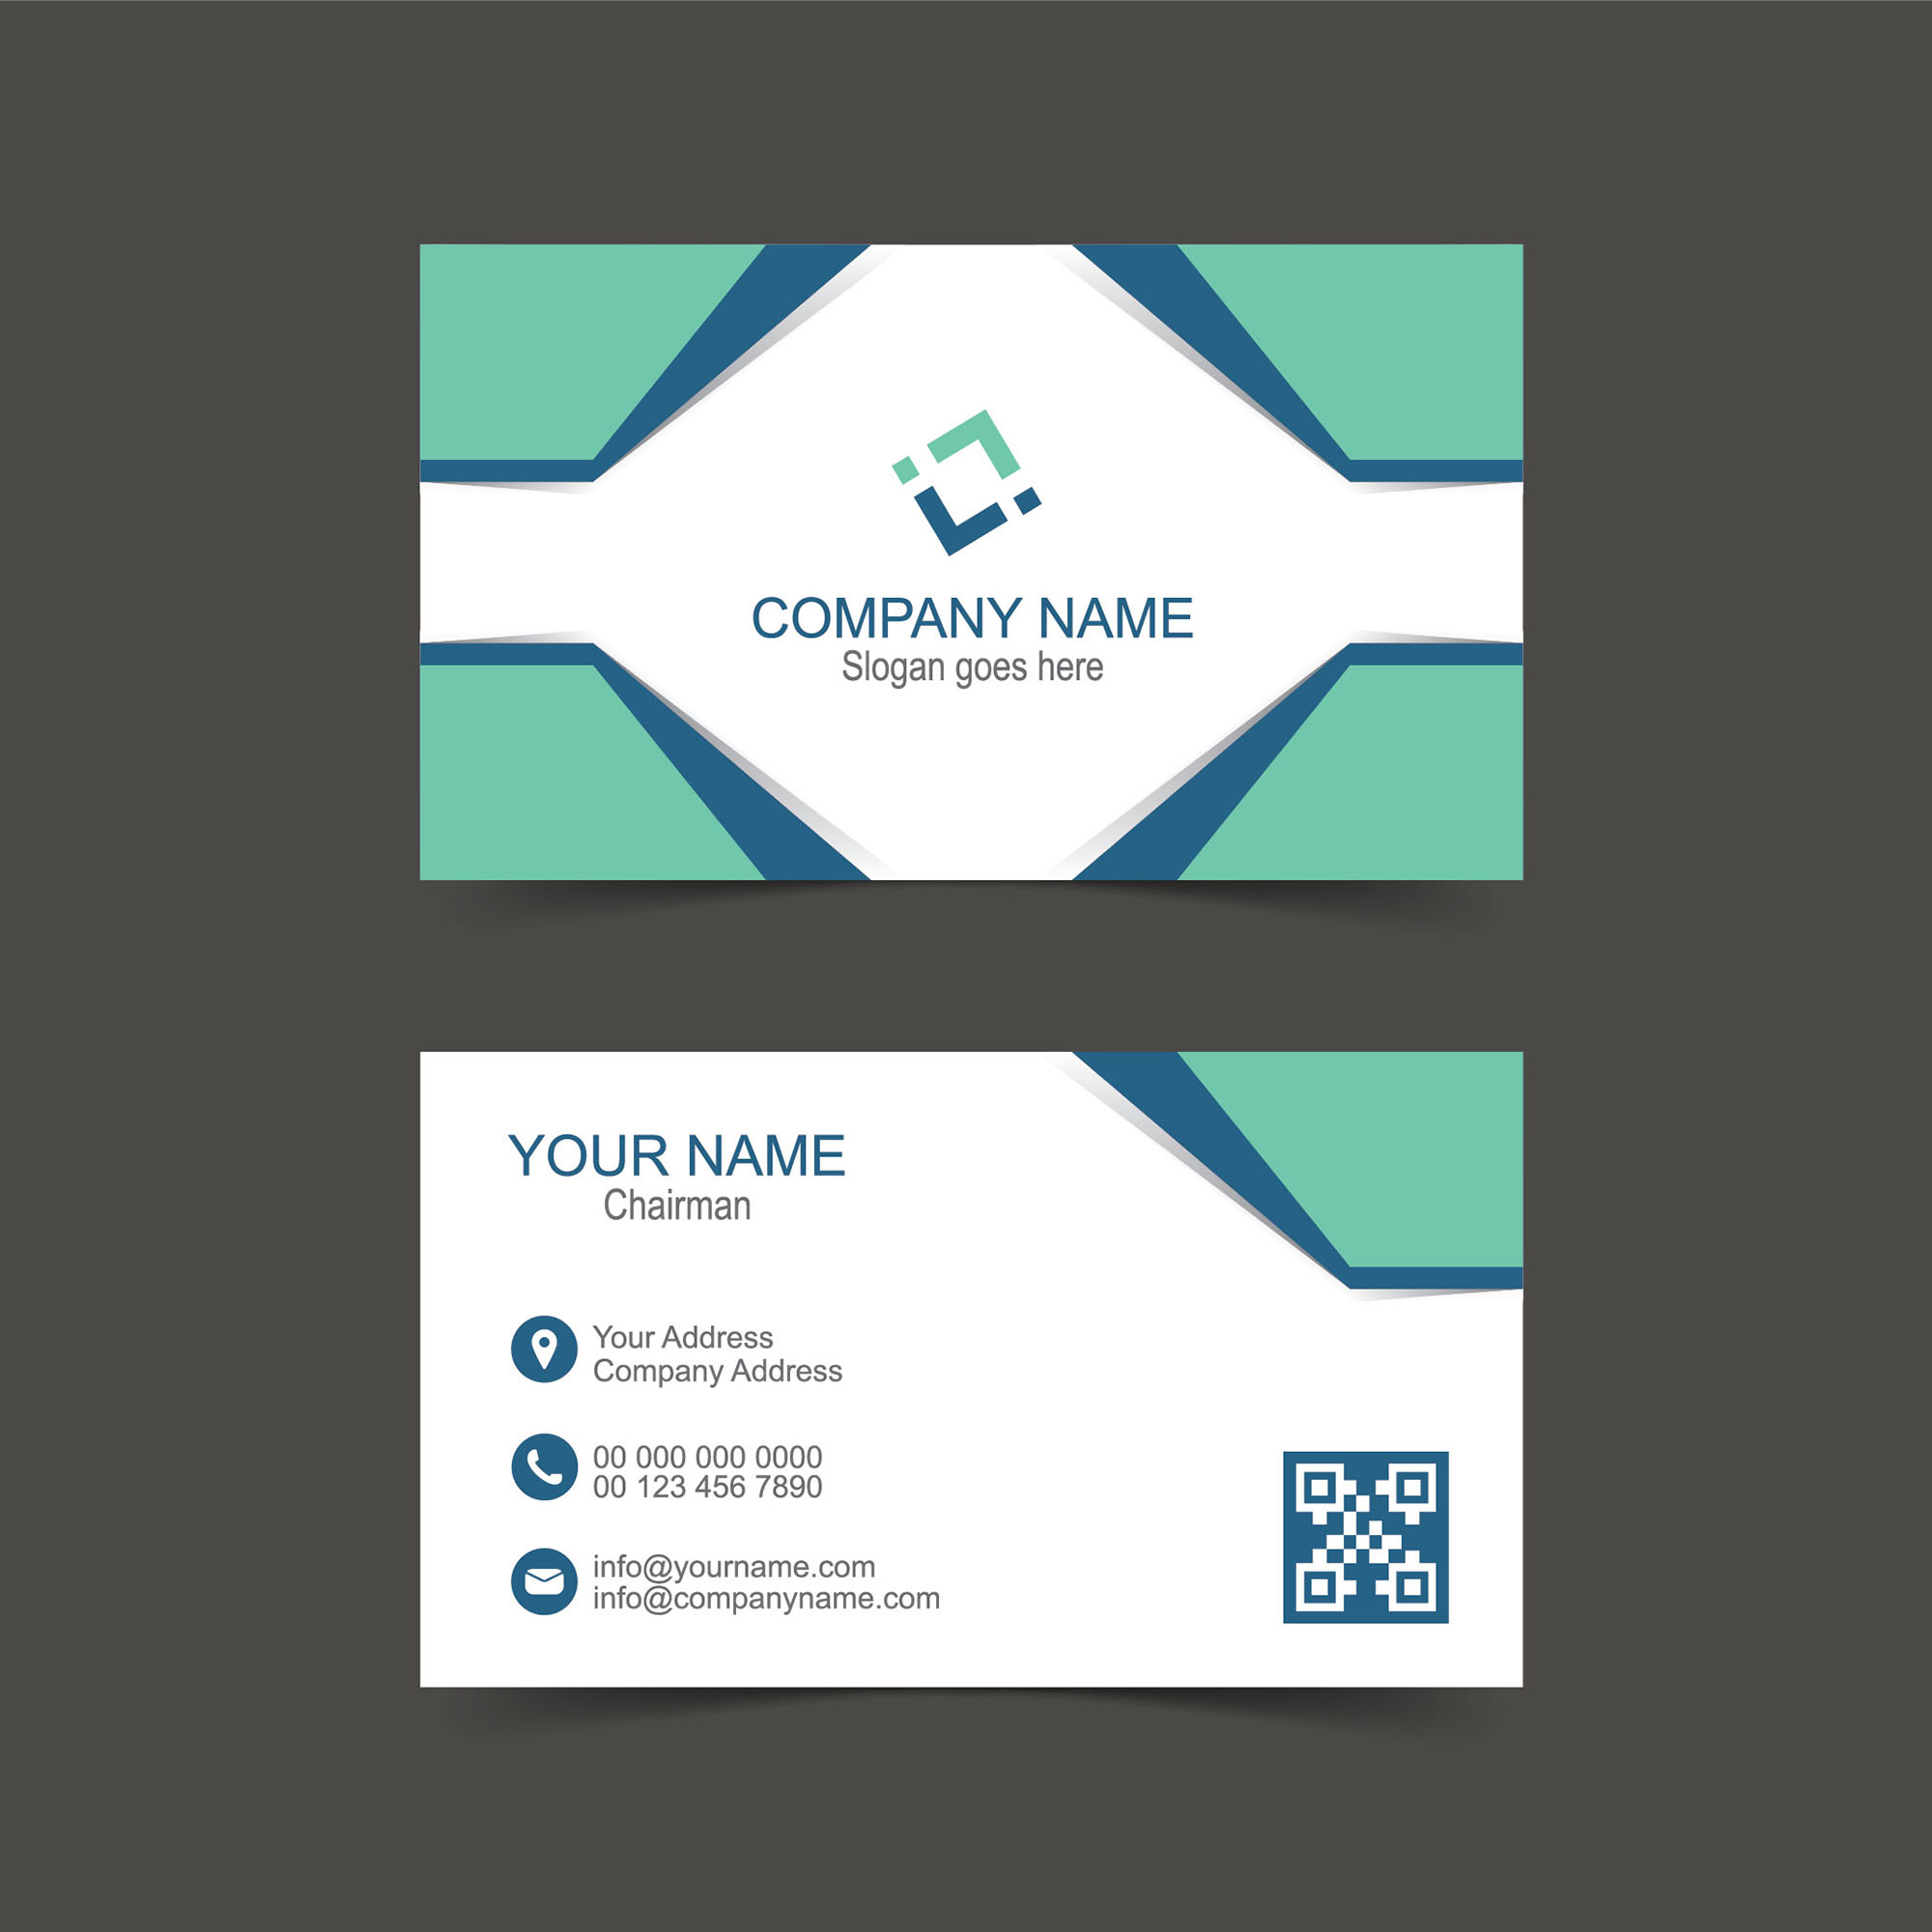 Free business card template layout images card design and card creative name card template free download wisxi business card business cards business card design business card cheaphphosting Choice Image